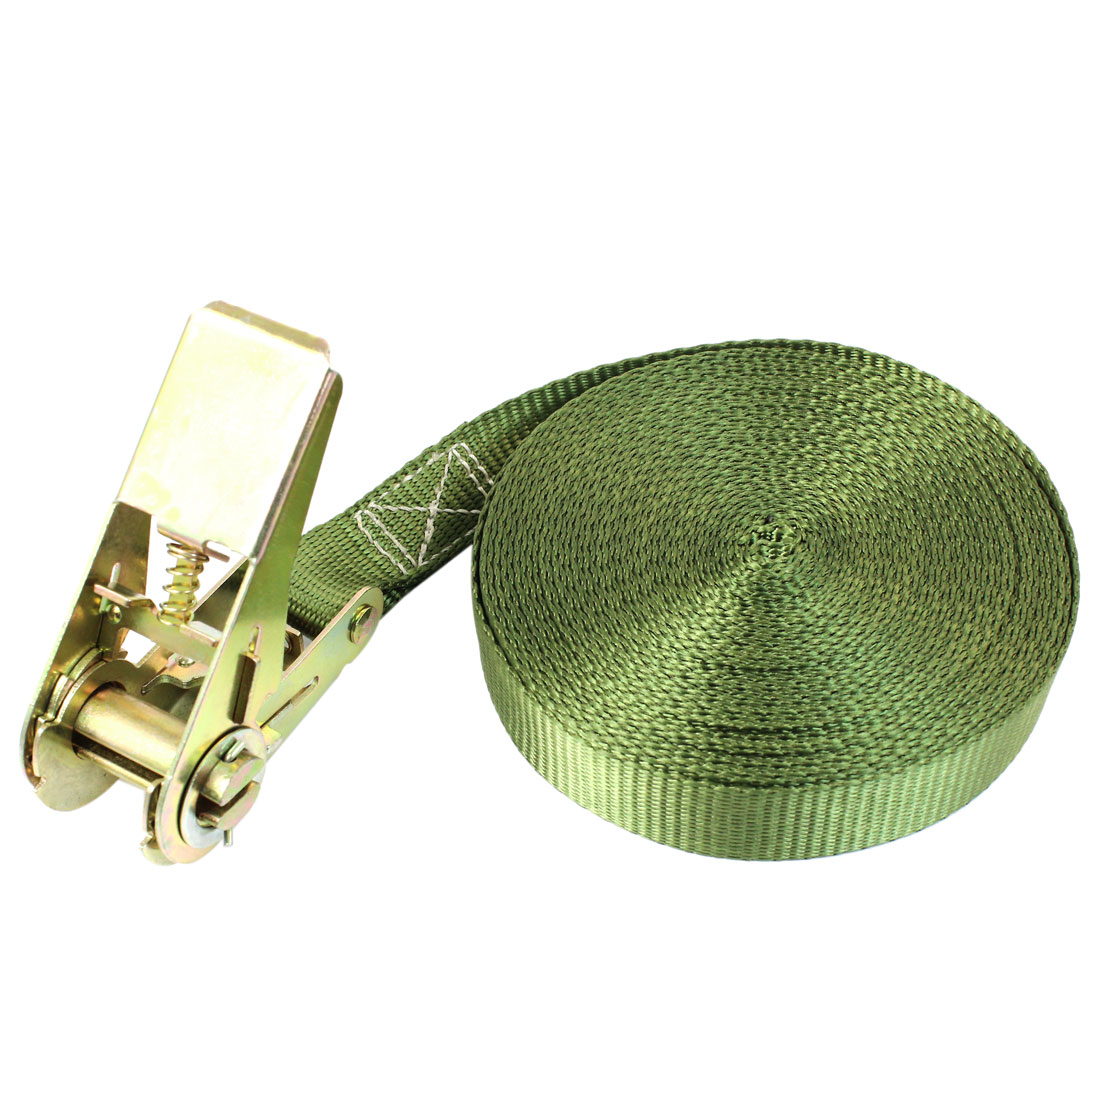 Travel Luggage Binding Band Metal Ratchet Tie Down Strap 10M 33ft Green